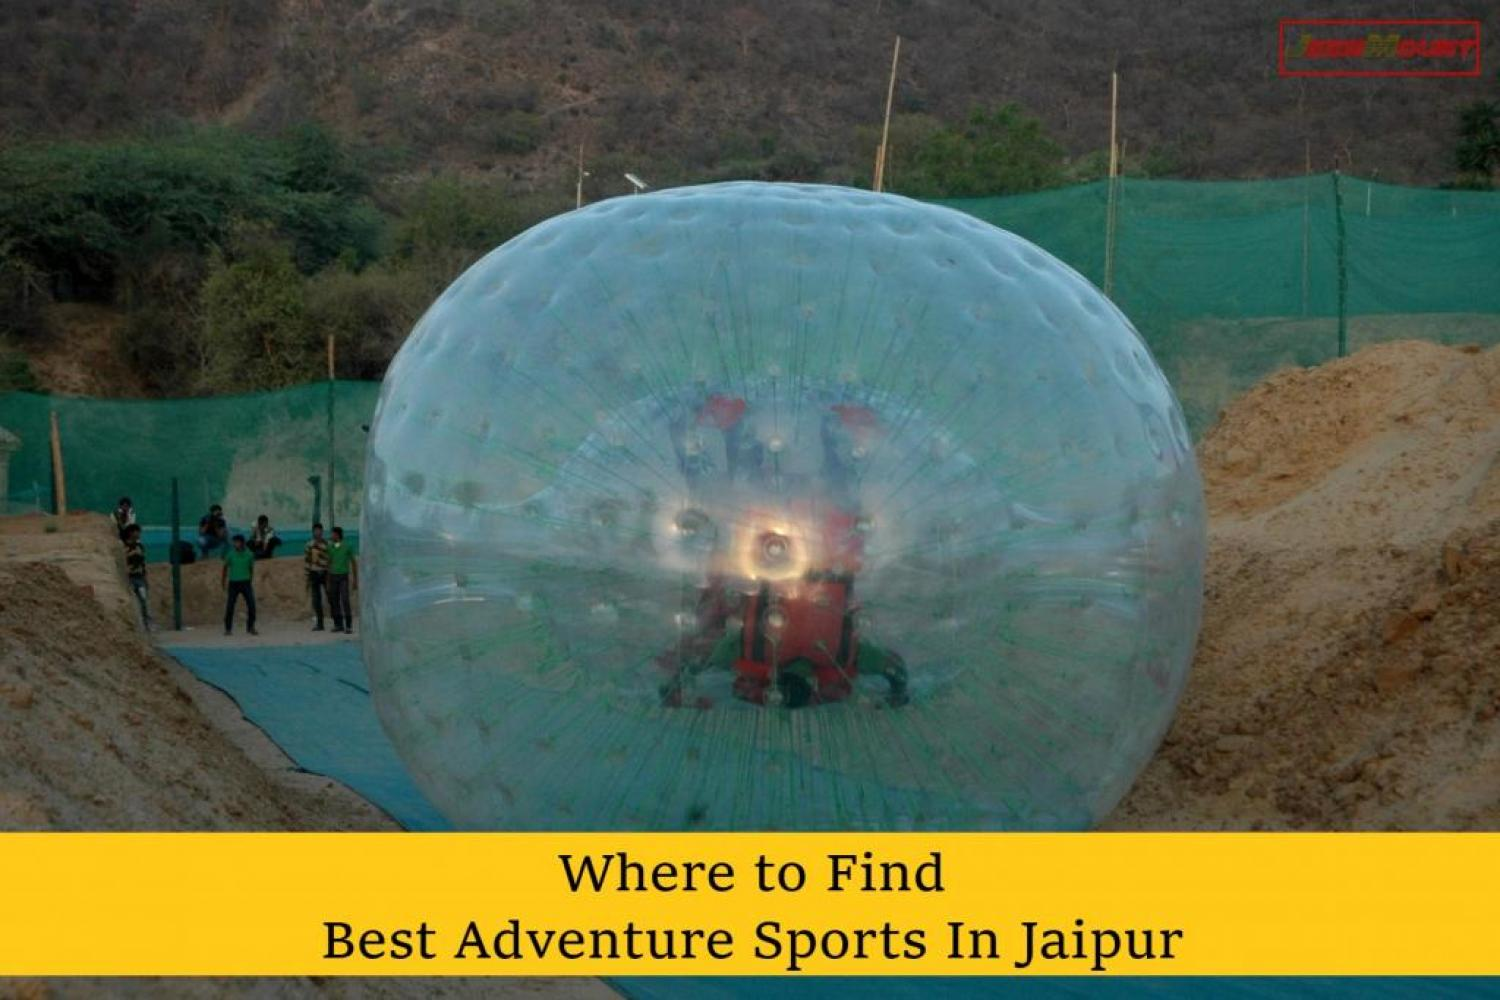 Where to Find Best Adventure Sports in Jaipur